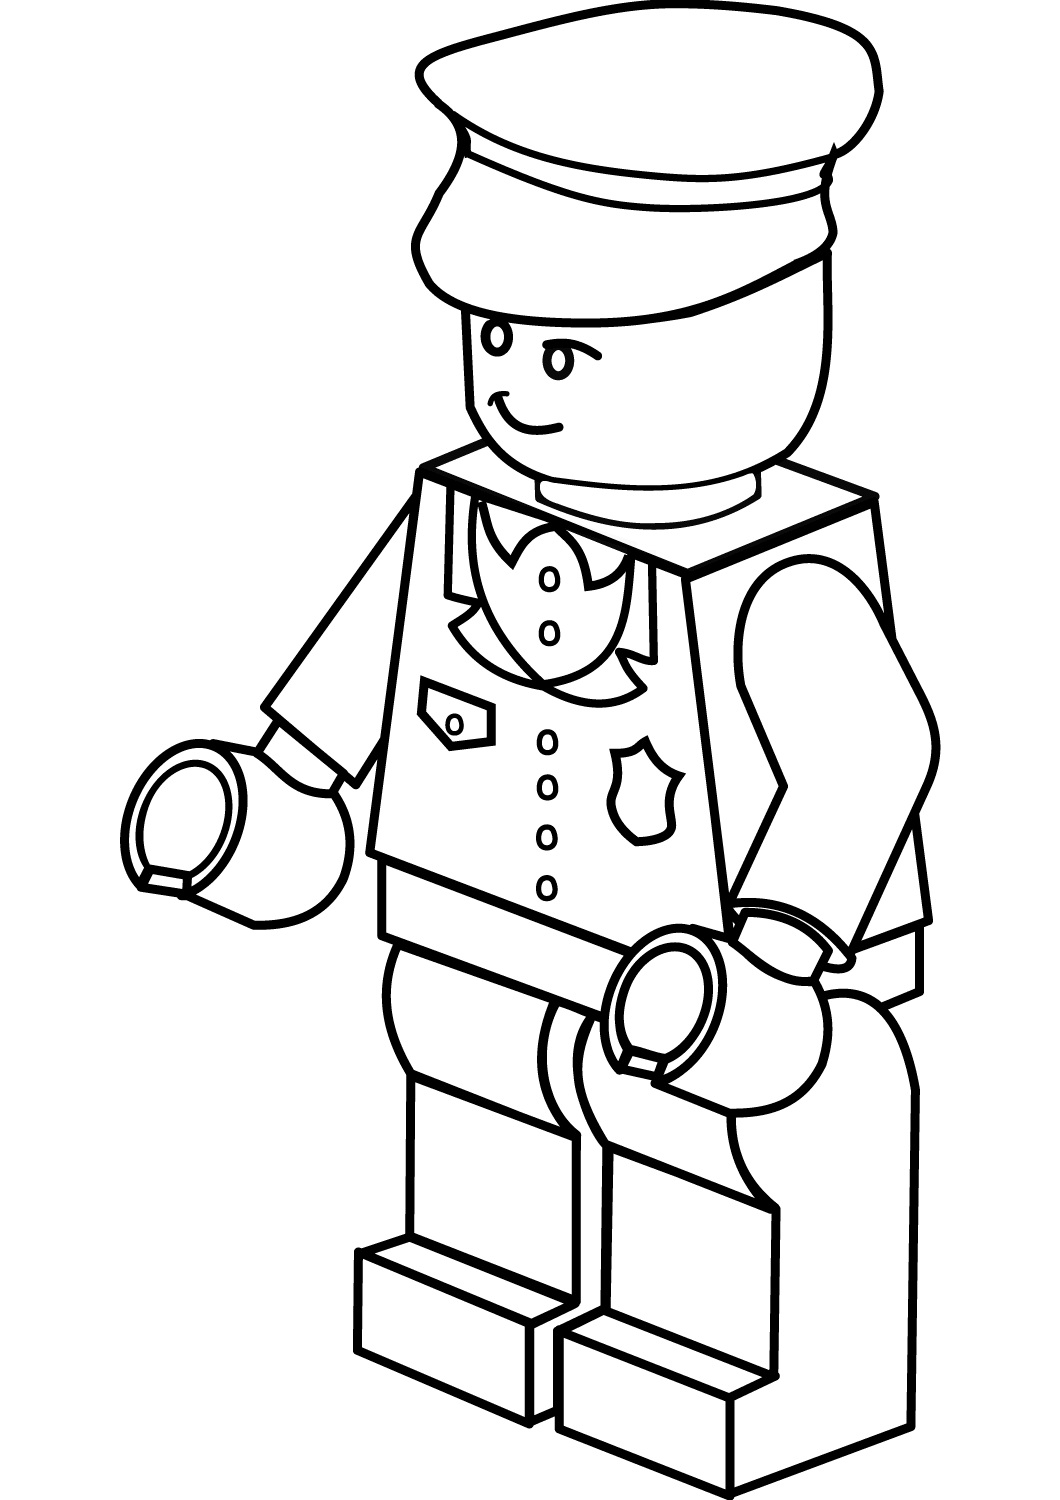 lego police officer coloring page lego police car coloring pages toys and dolls coloring police officer page lego coloring